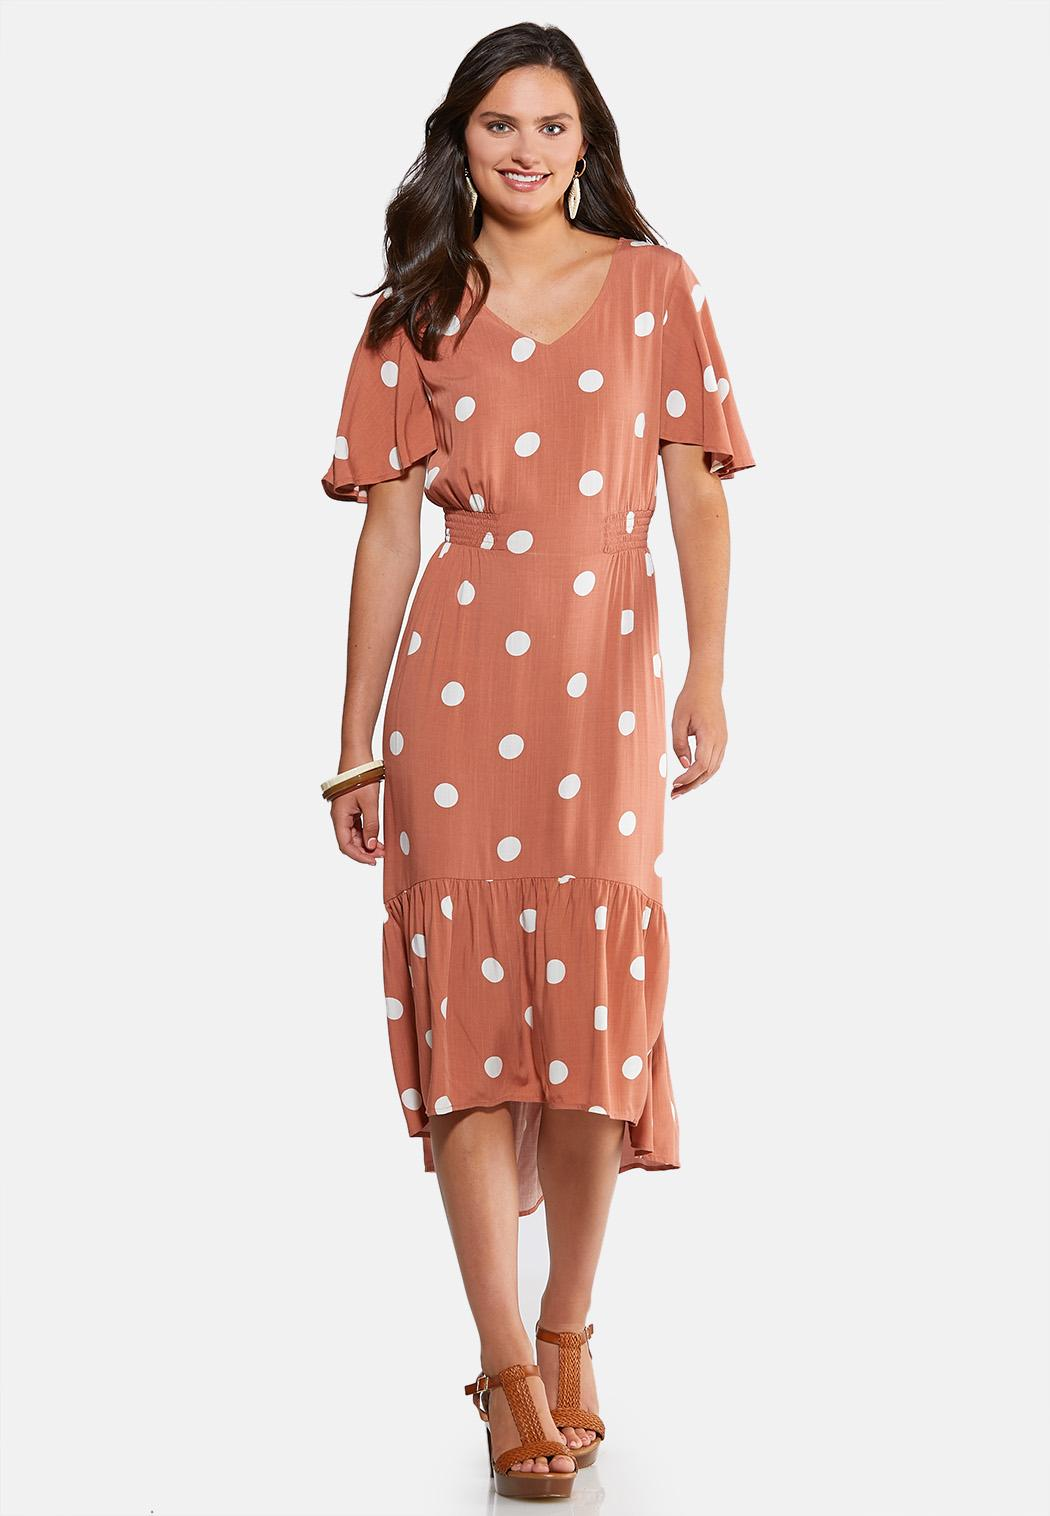 Plus Size Polka Dot Midi Dress Midi Cato Fashions